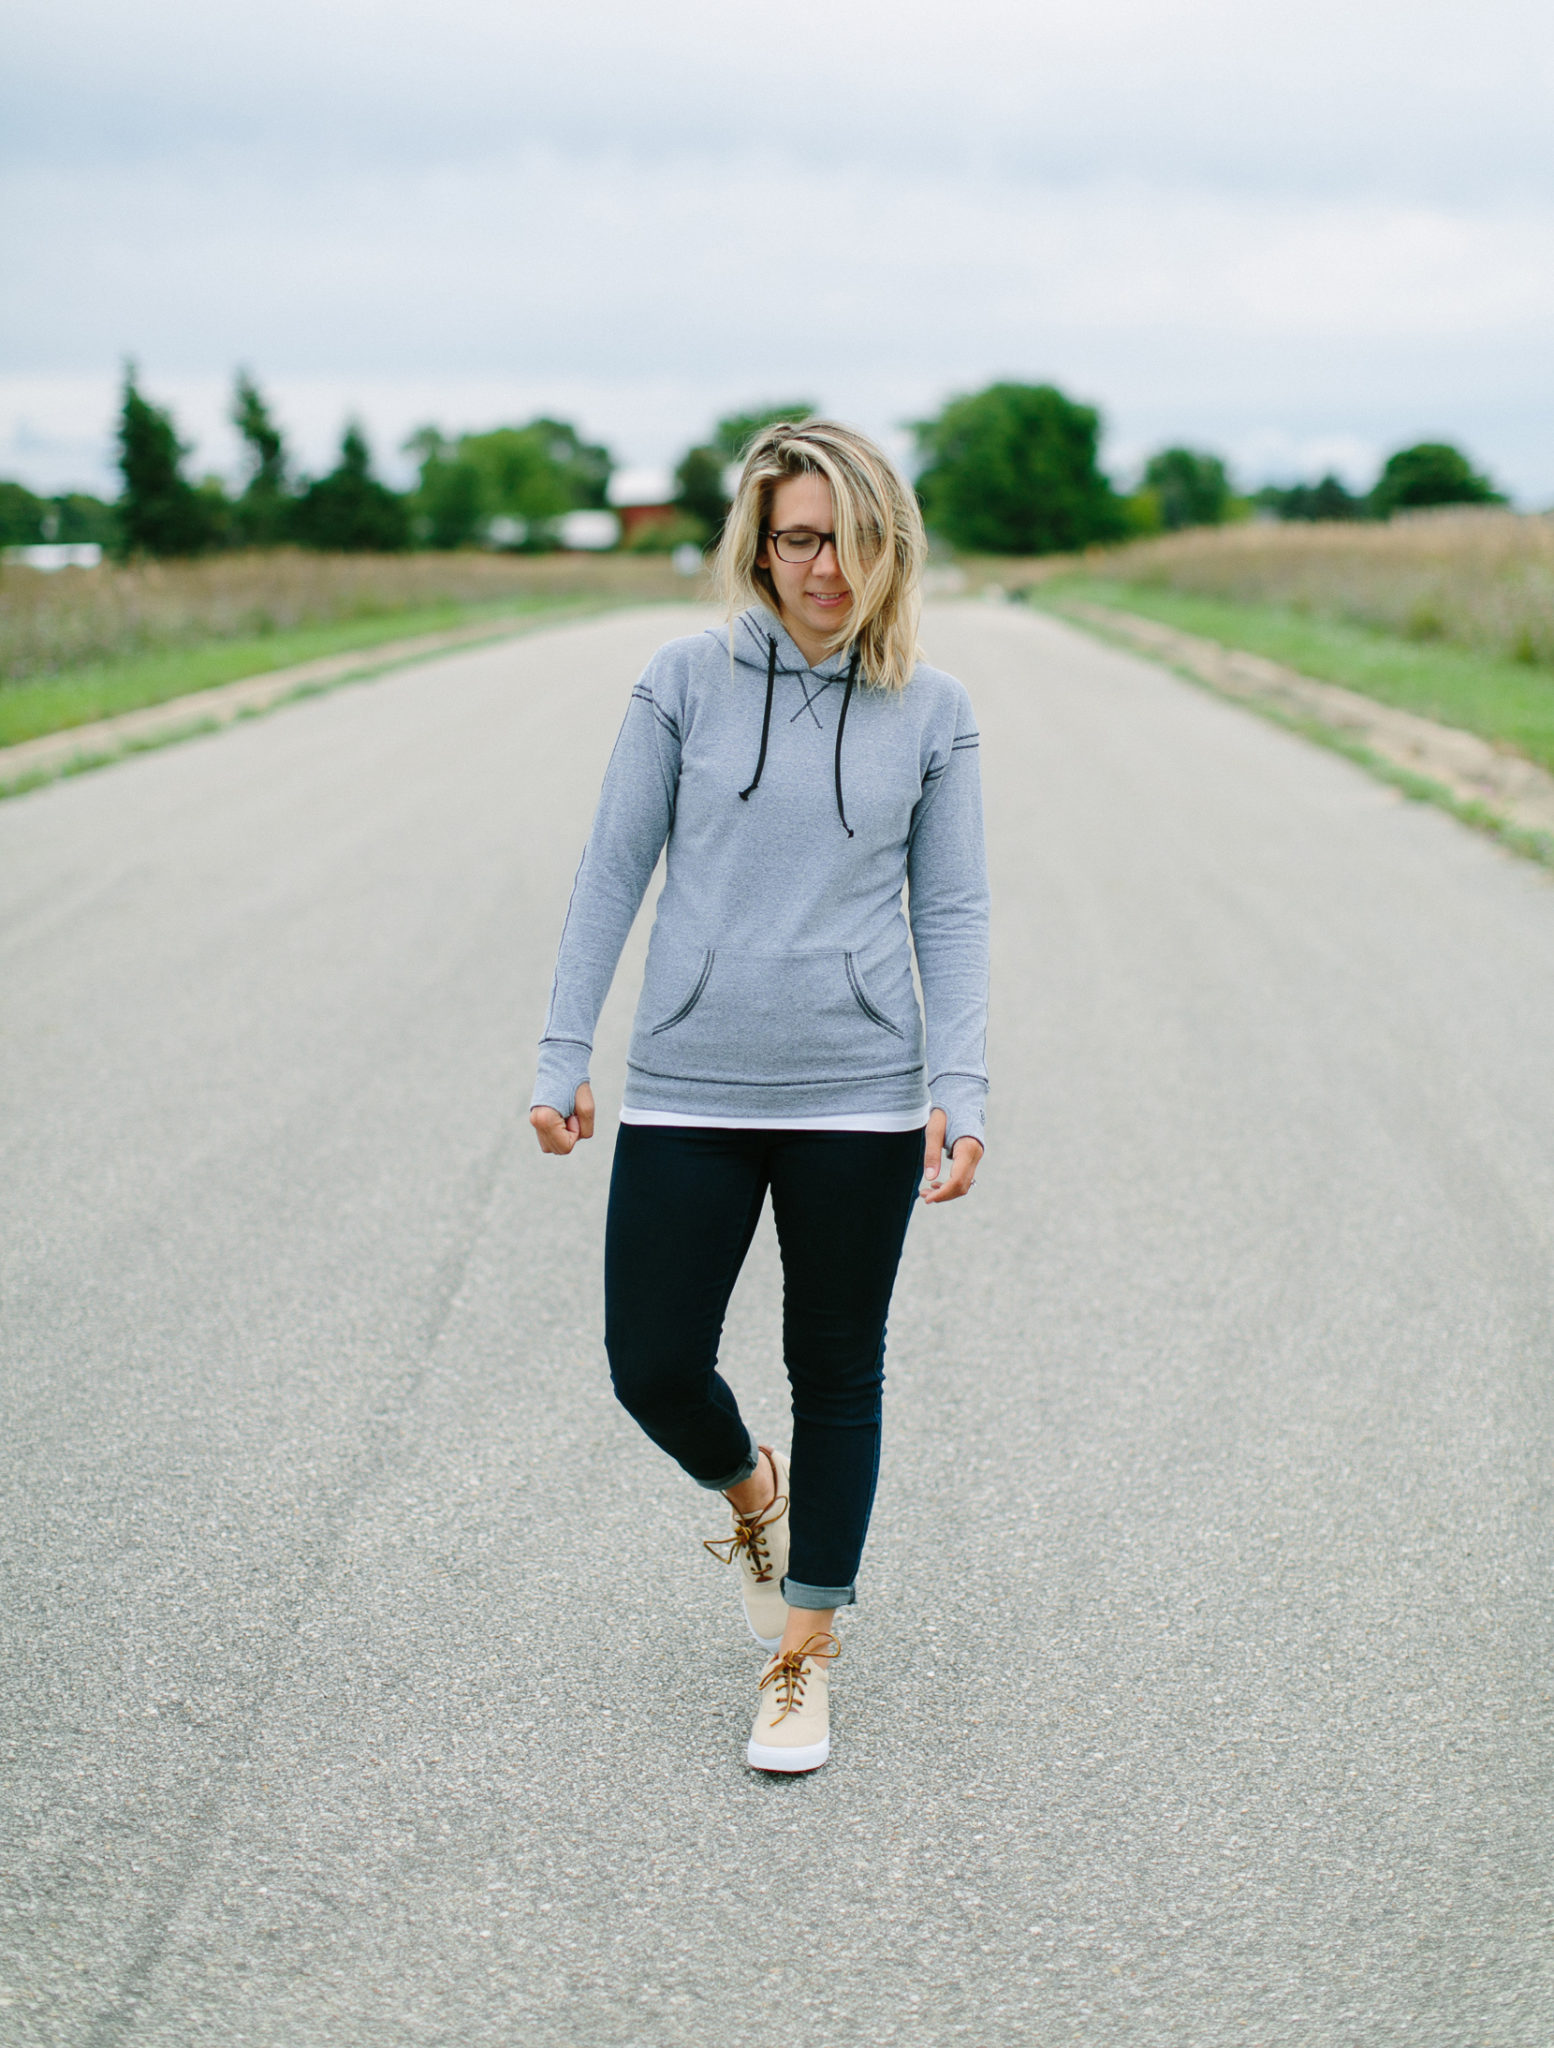 Albion Fit Athletic Wear for Women  |  The Fresh Exchange